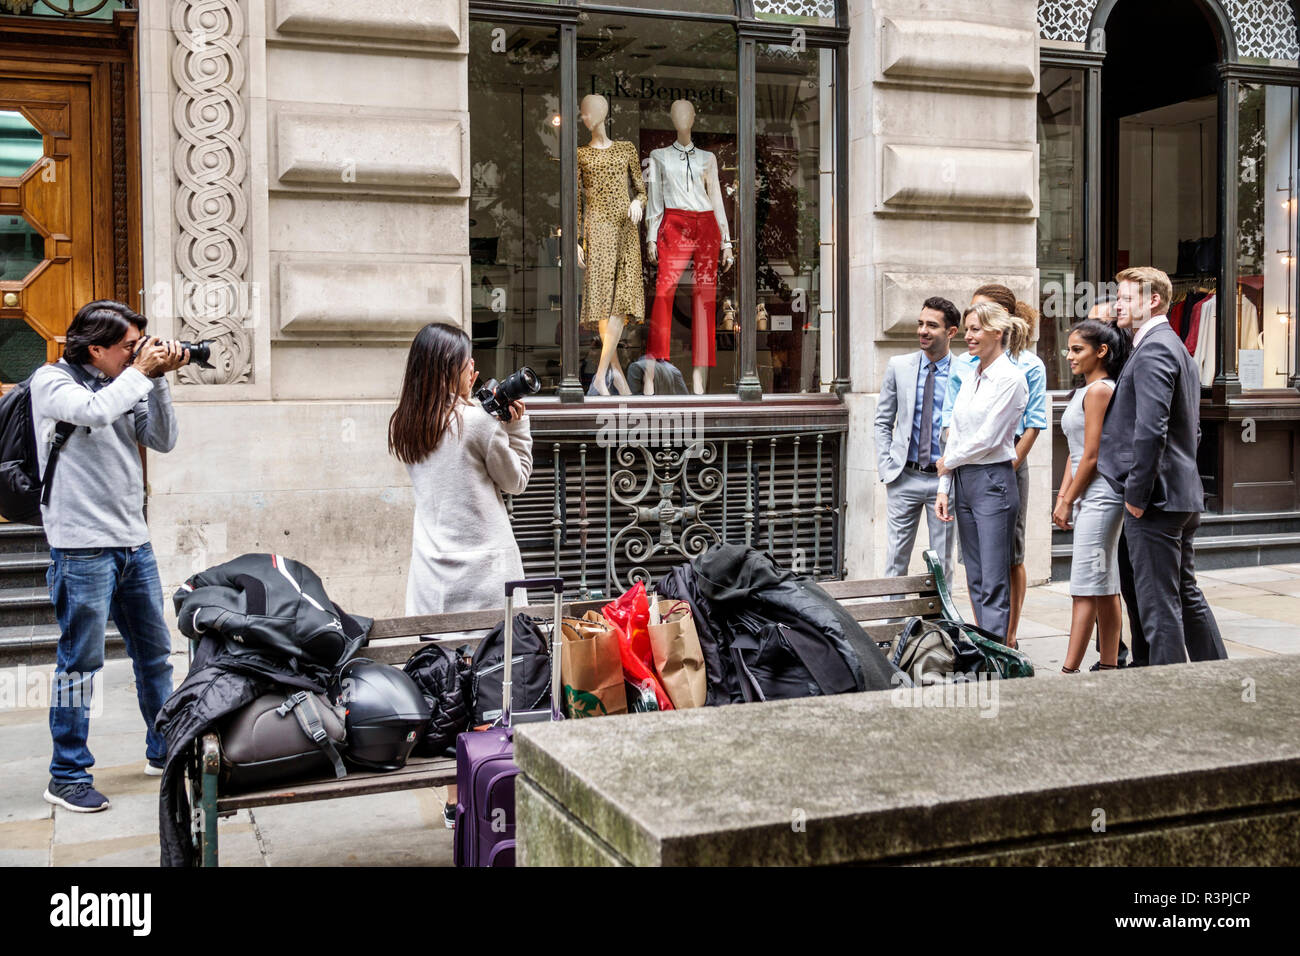 London England Great Britain United Kingdom City of London financial centre center Royal Exchange L.K. Bennett womenswear boutique clothing window dis - Stock Image